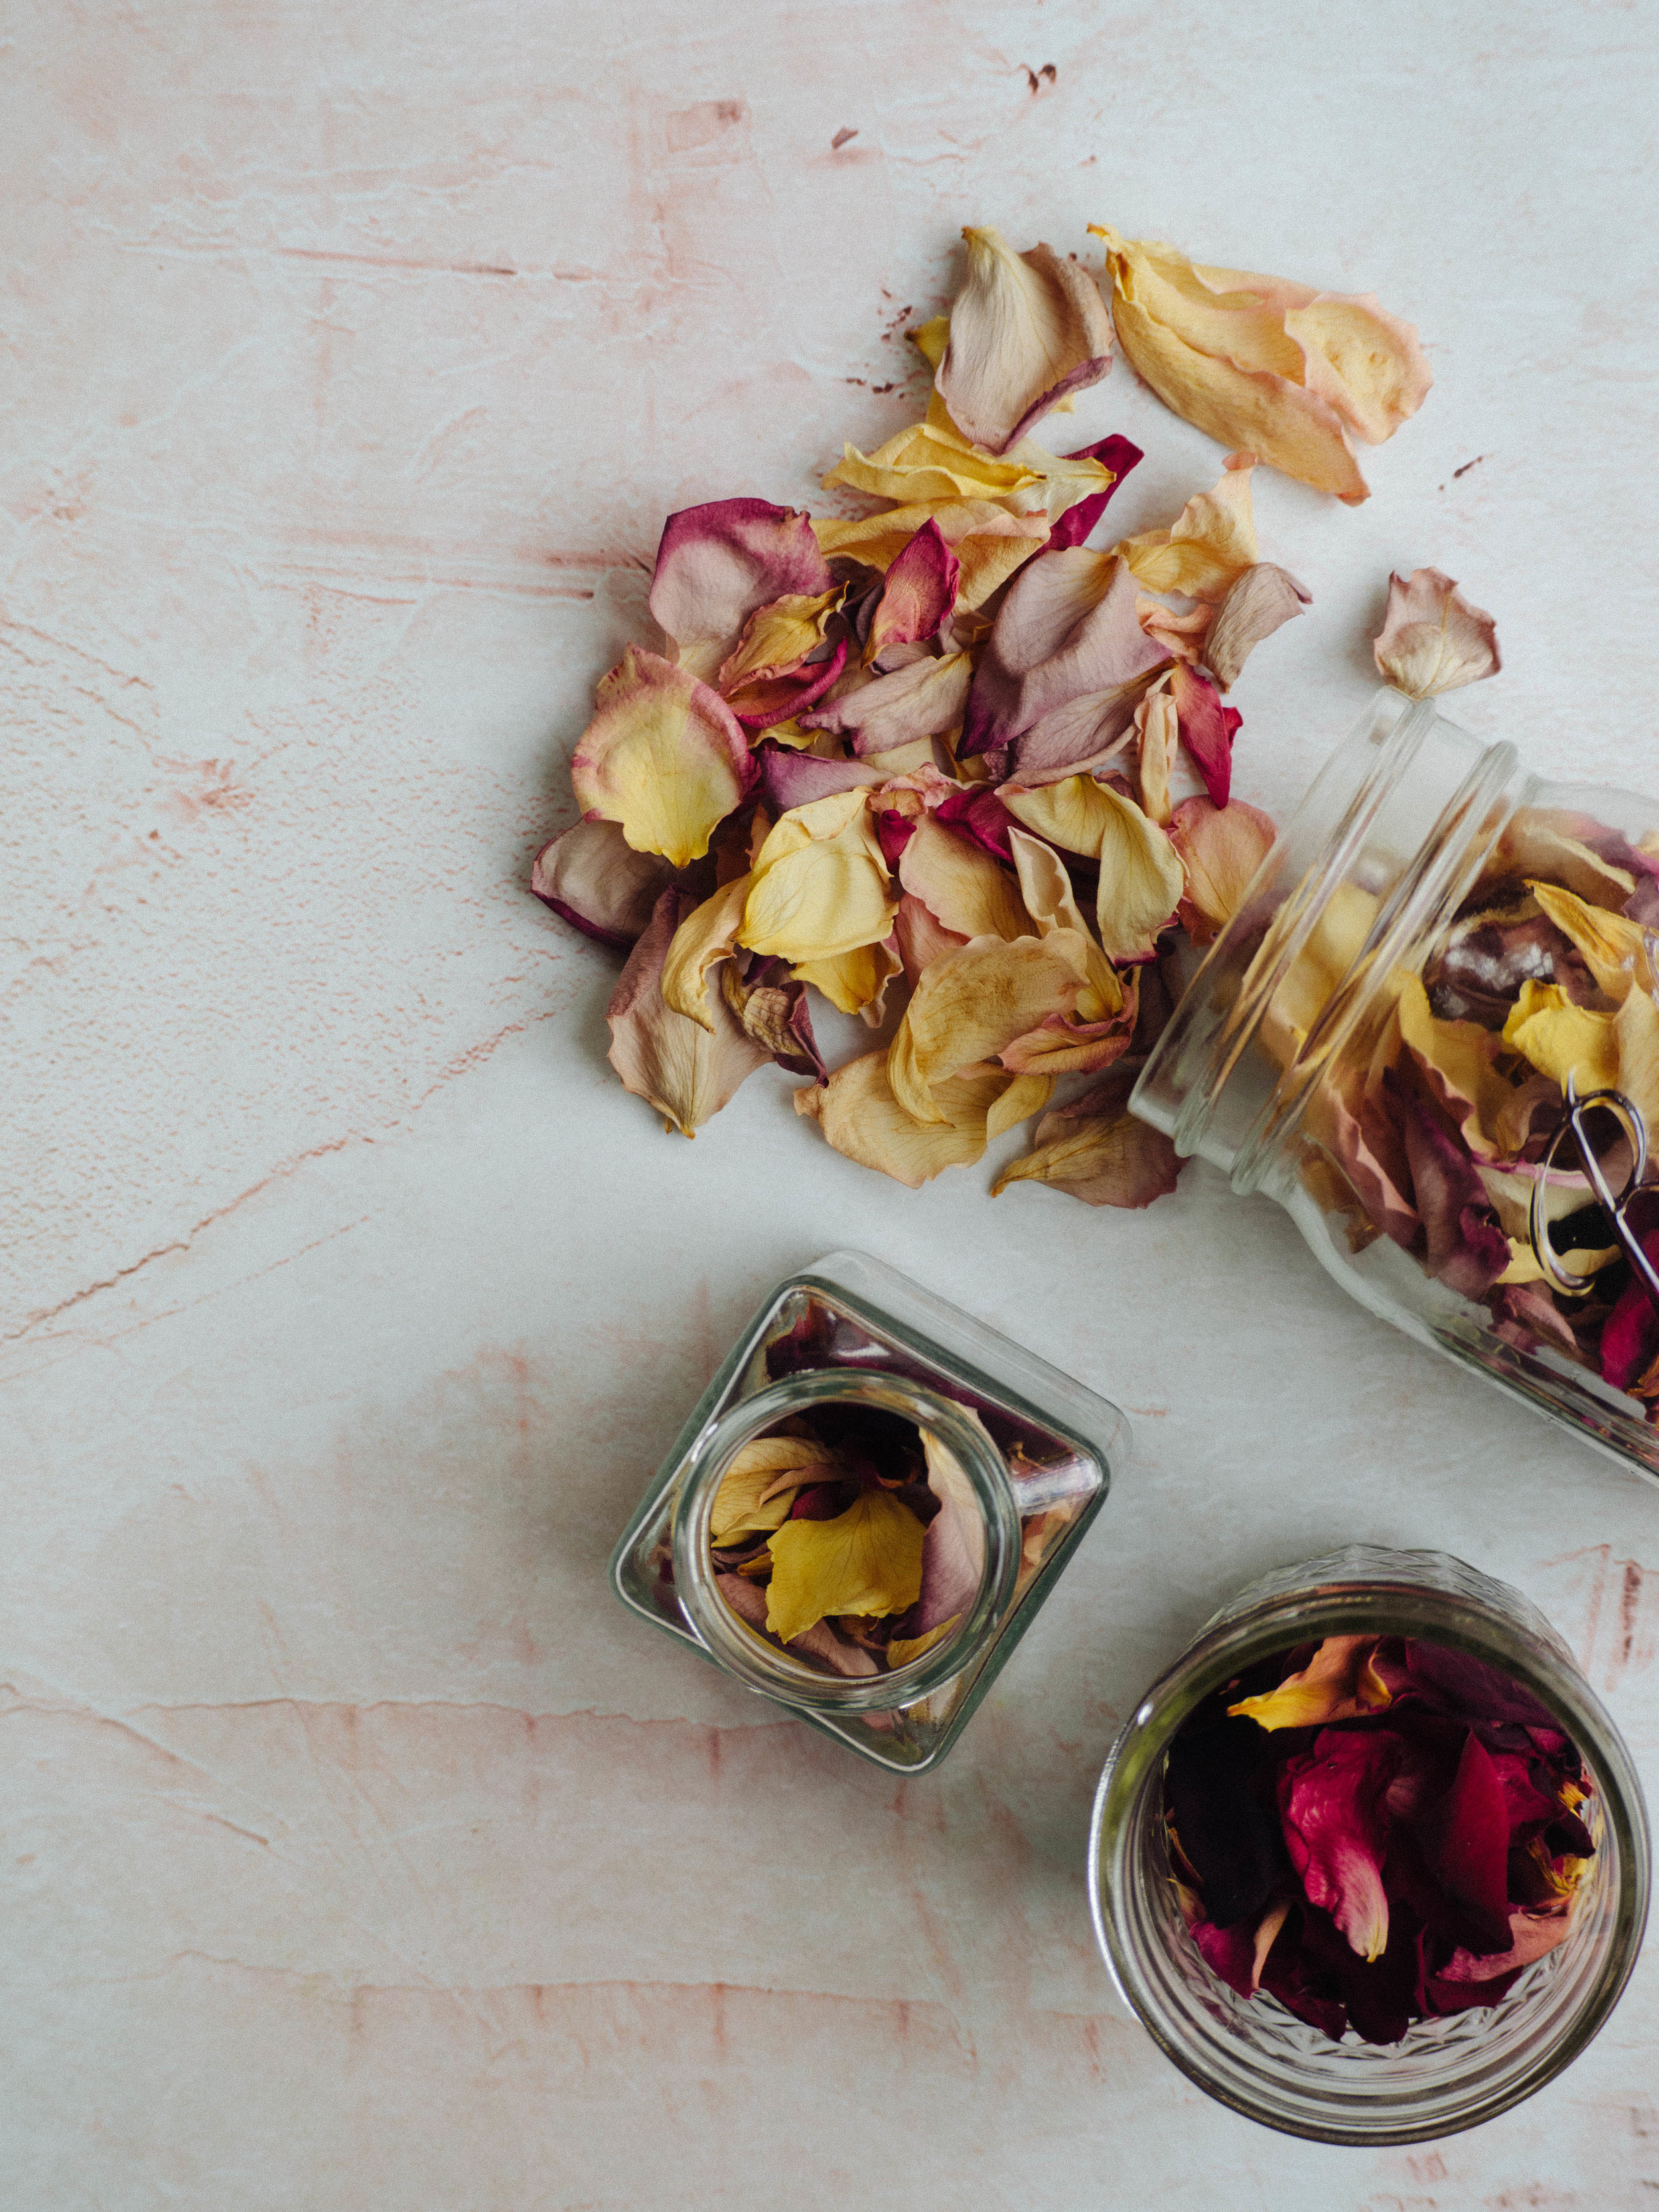 How to Dry Rose Petals for Baking